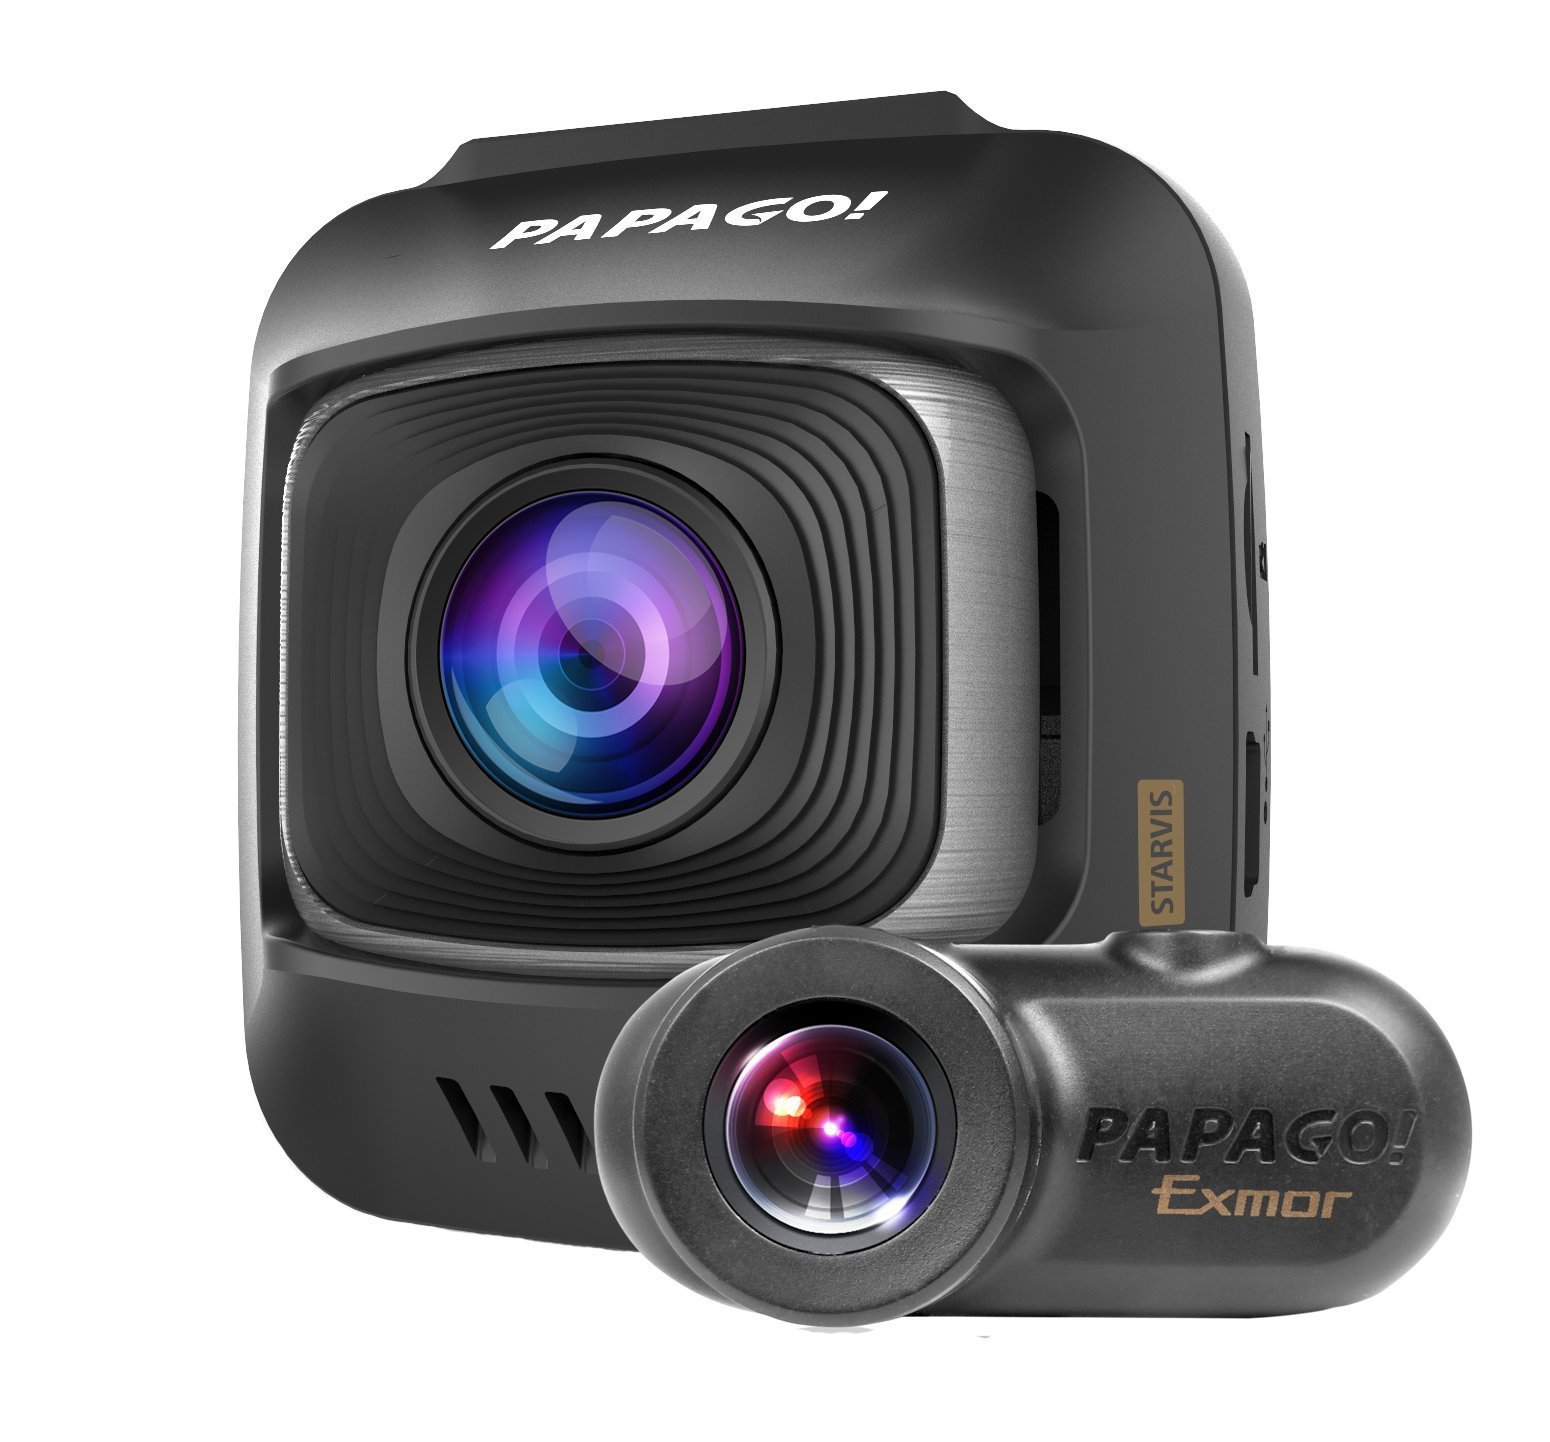 PAPAGO! GoSafe S780 1080p Full HD 60 FPS Dash Cam with Sony Starvis Image Sensor Ultra Wide Angle and 16GB Micro SD Card (GSS78016G)